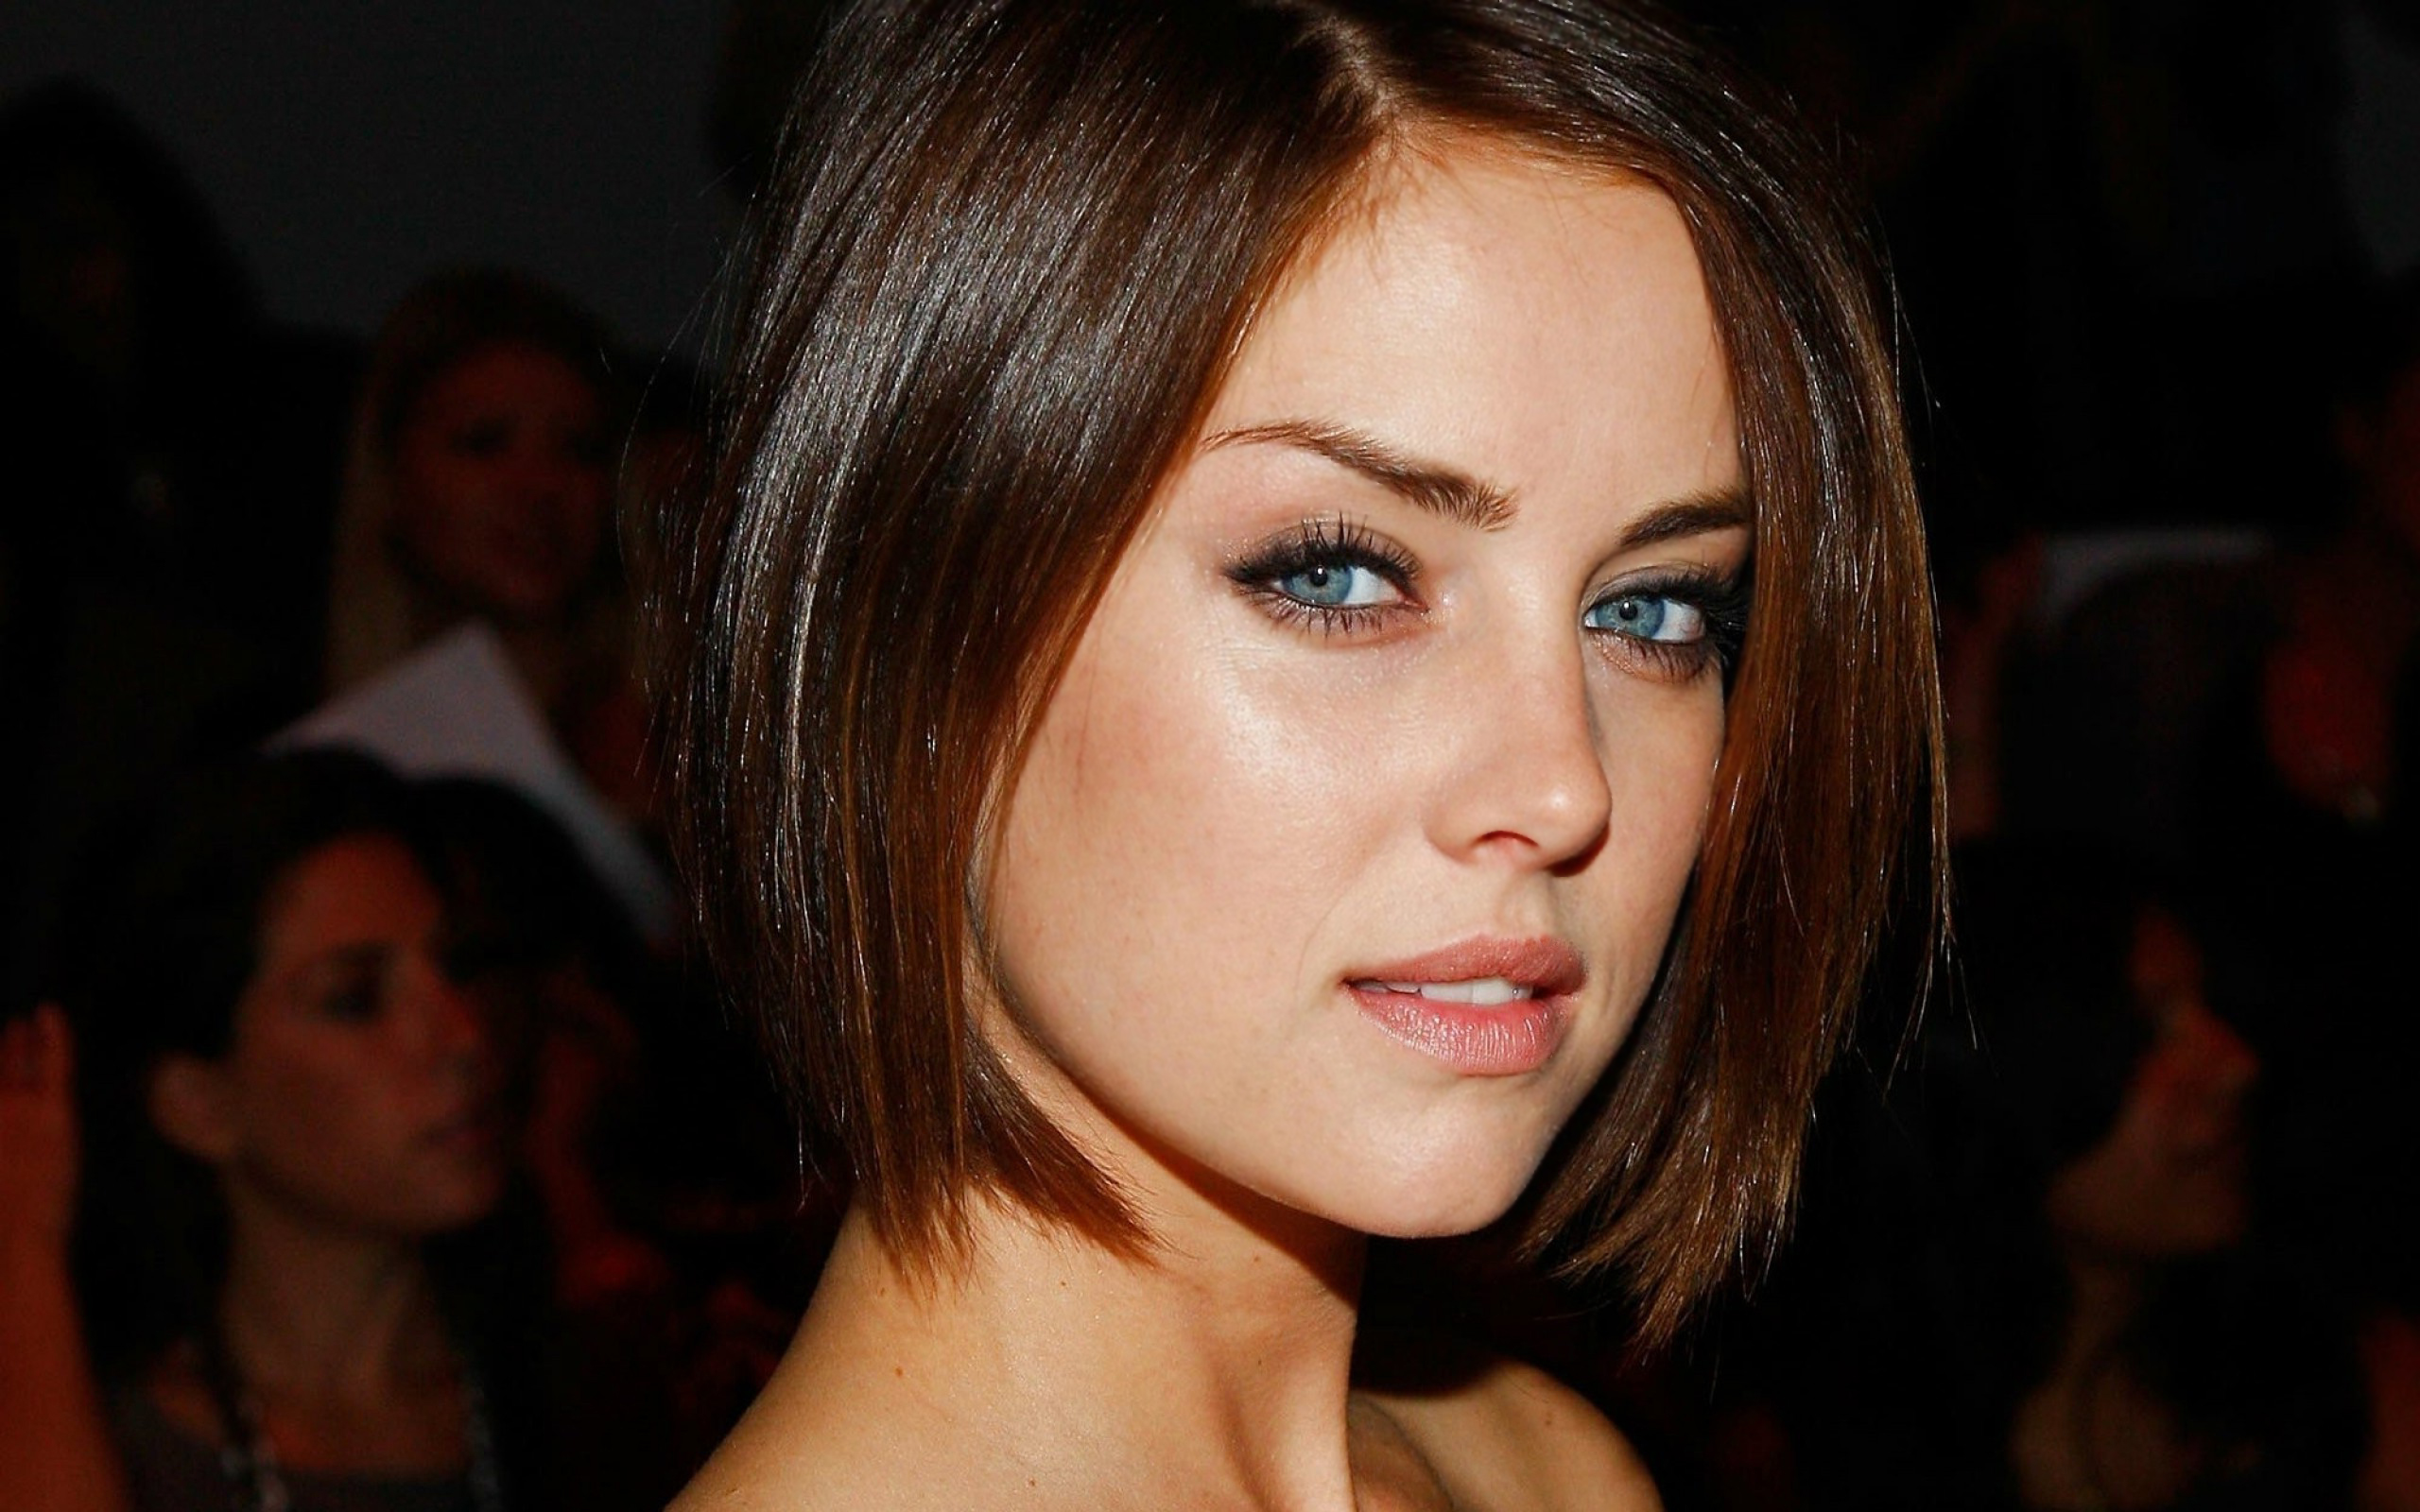 2560x1600 - Jessica Stroup Wallpapers 11